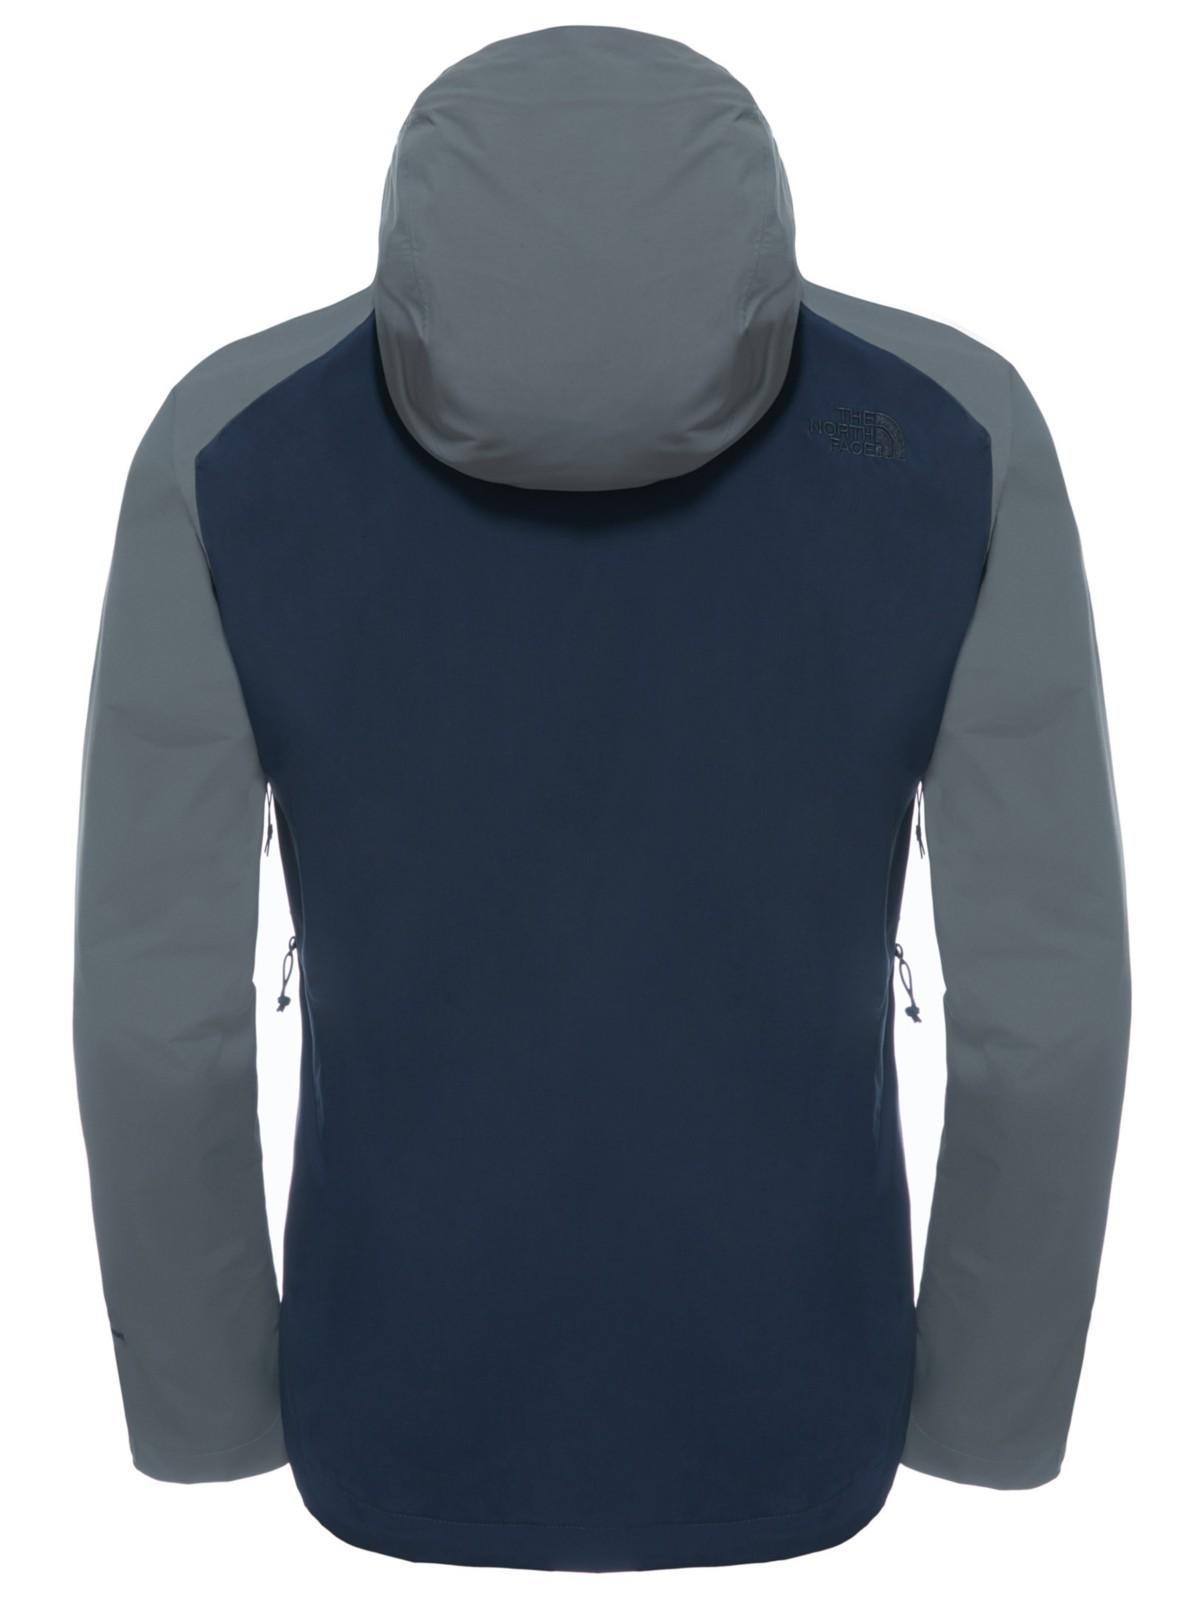 The North Face Synthetic Stratos Jacket in Navy (Blue) for Men